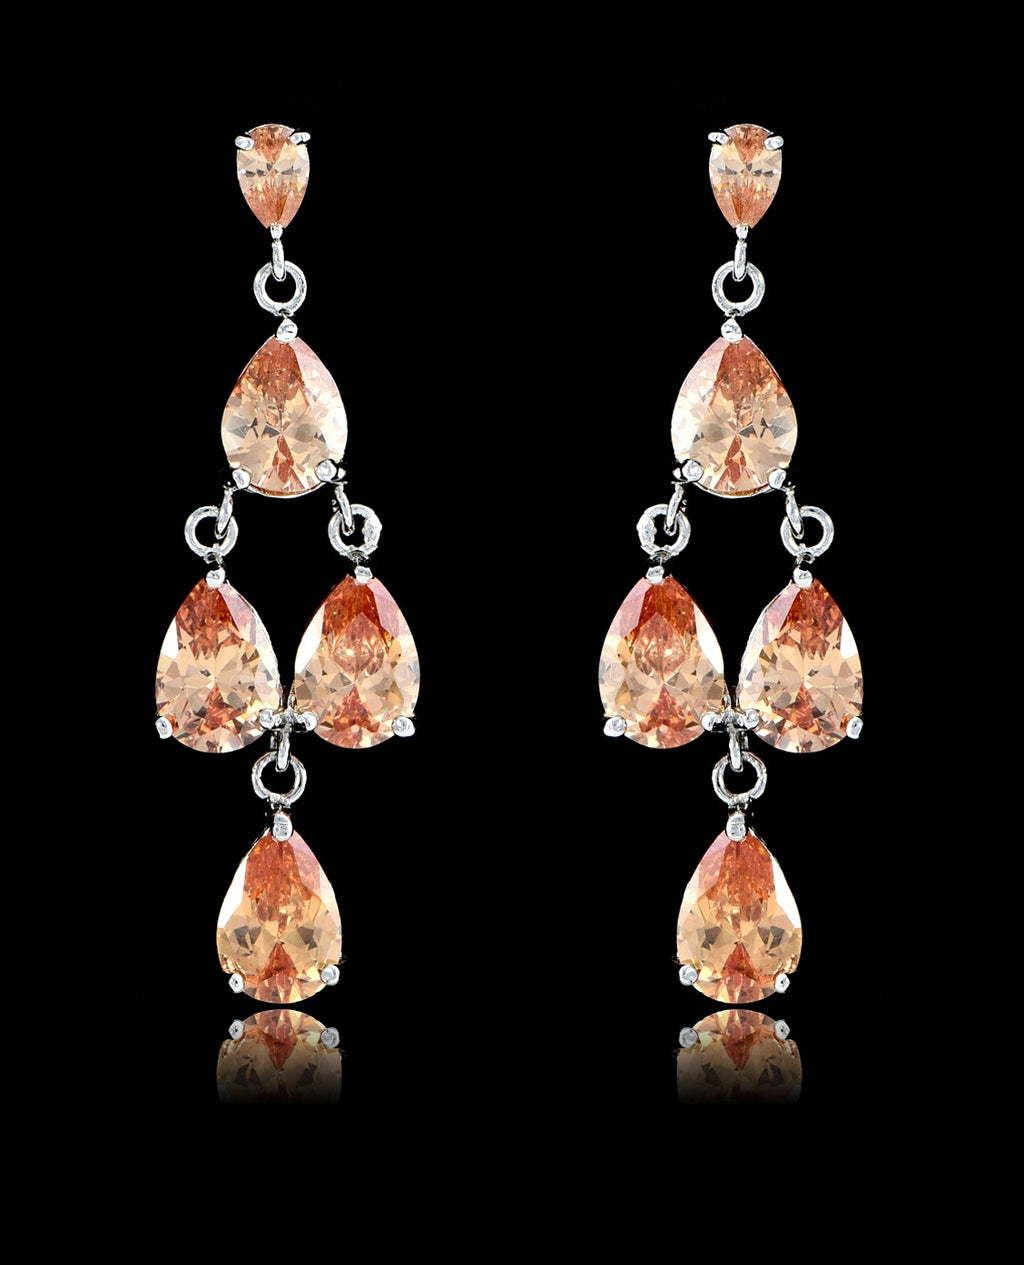 Light Peach Cubic Zirconia Chandelier Earrings - Bedazzled By Jeanelle - 1